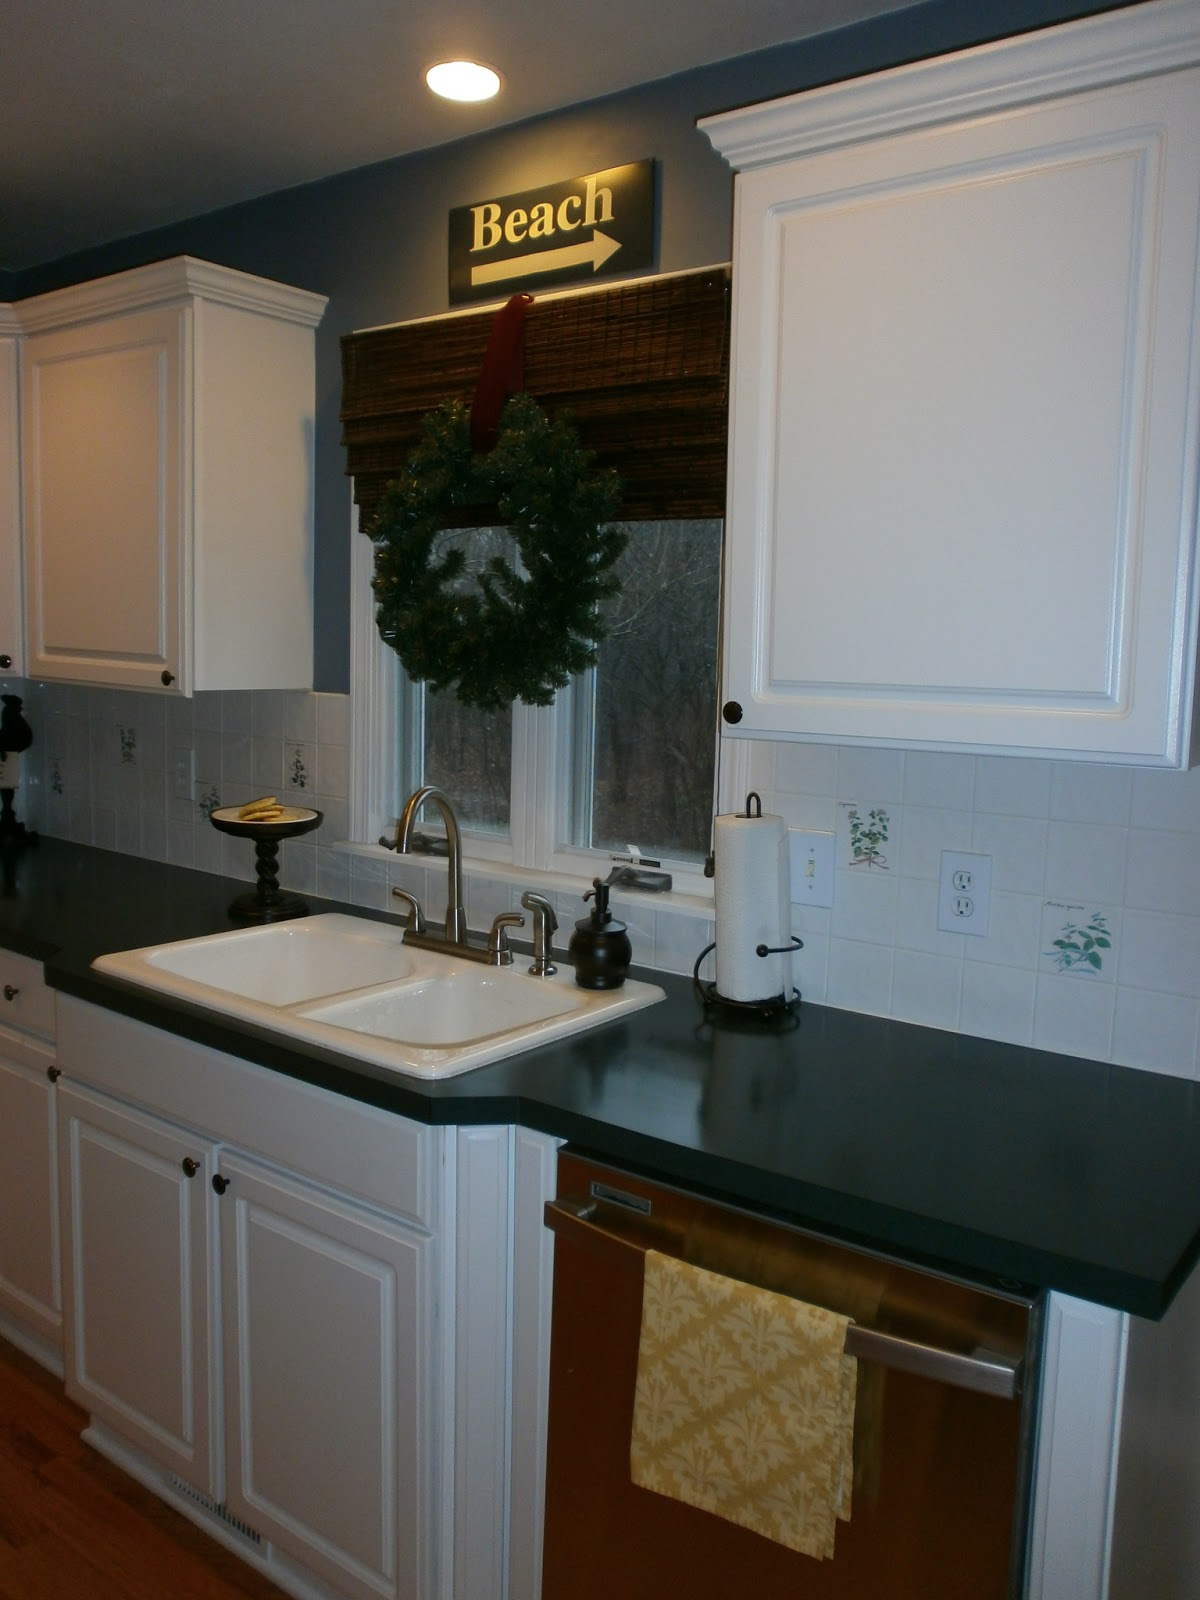 Kitchen Tiles Painted Over diy: painting a ceramic tile backsplash